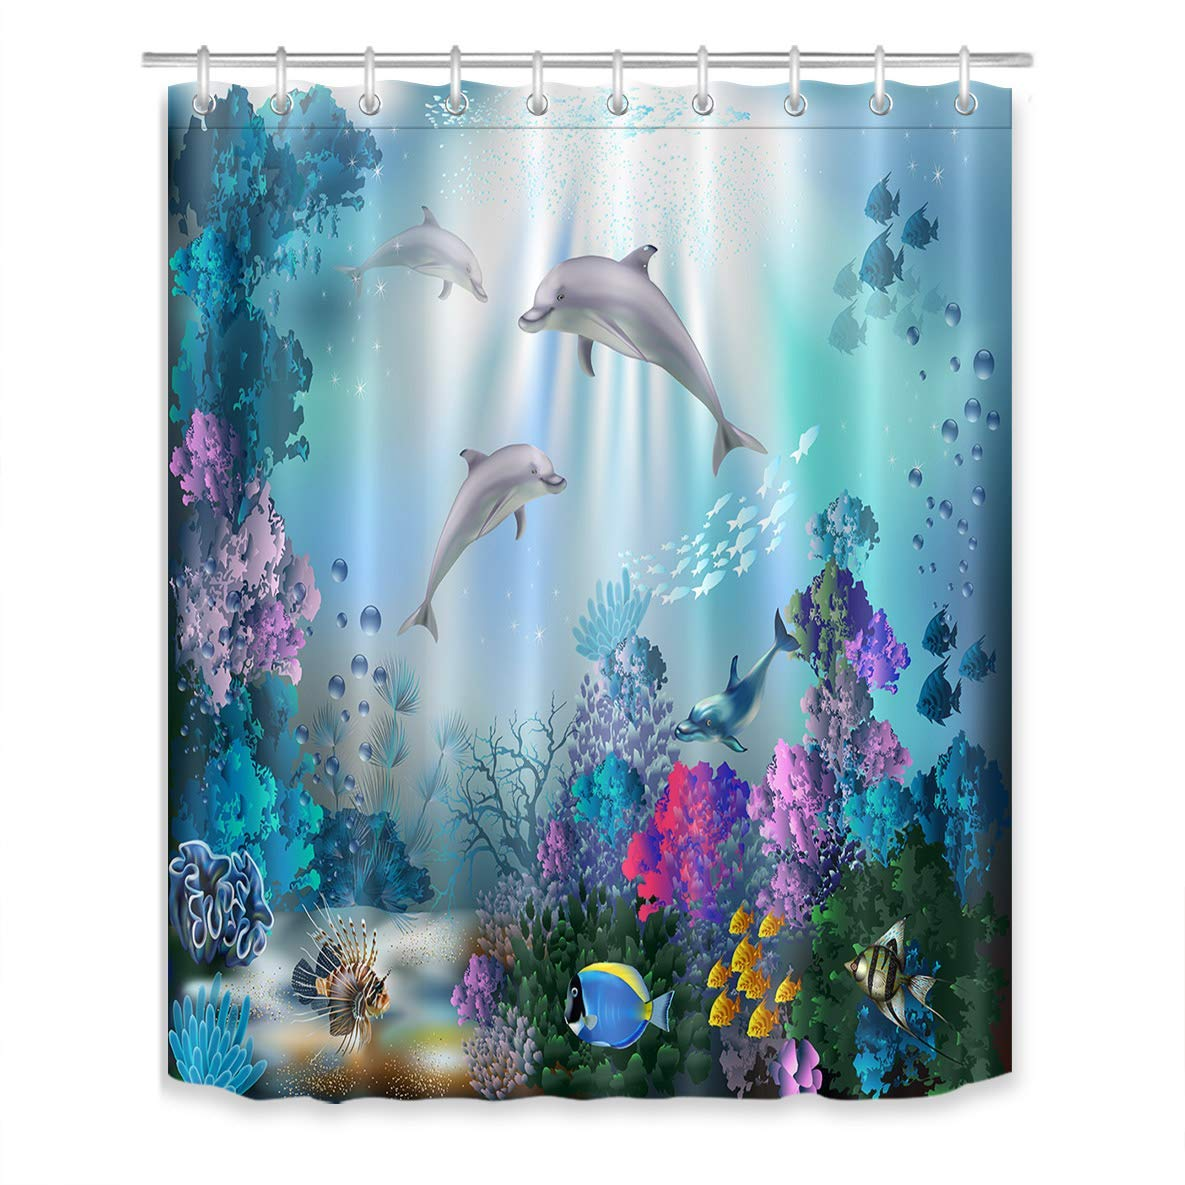 Ocean Shower Curtain Dolphin Coral Reef Bathroom Curtains